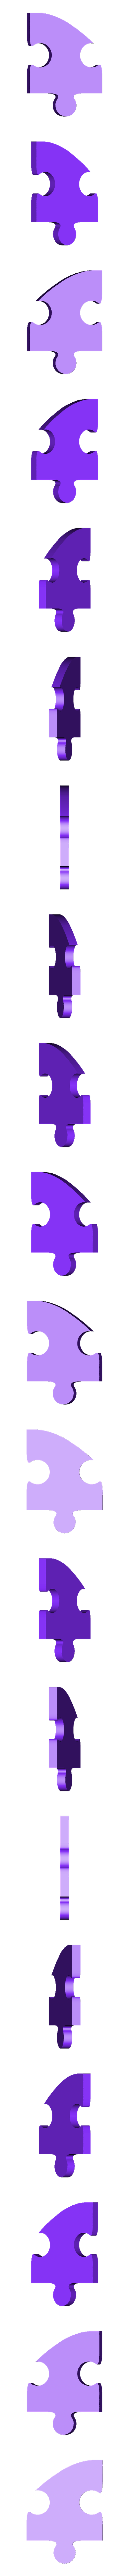 2.stl Download free STL file Autism Awareness Month Puzzle 2019 • Model to 3D print, Dsk